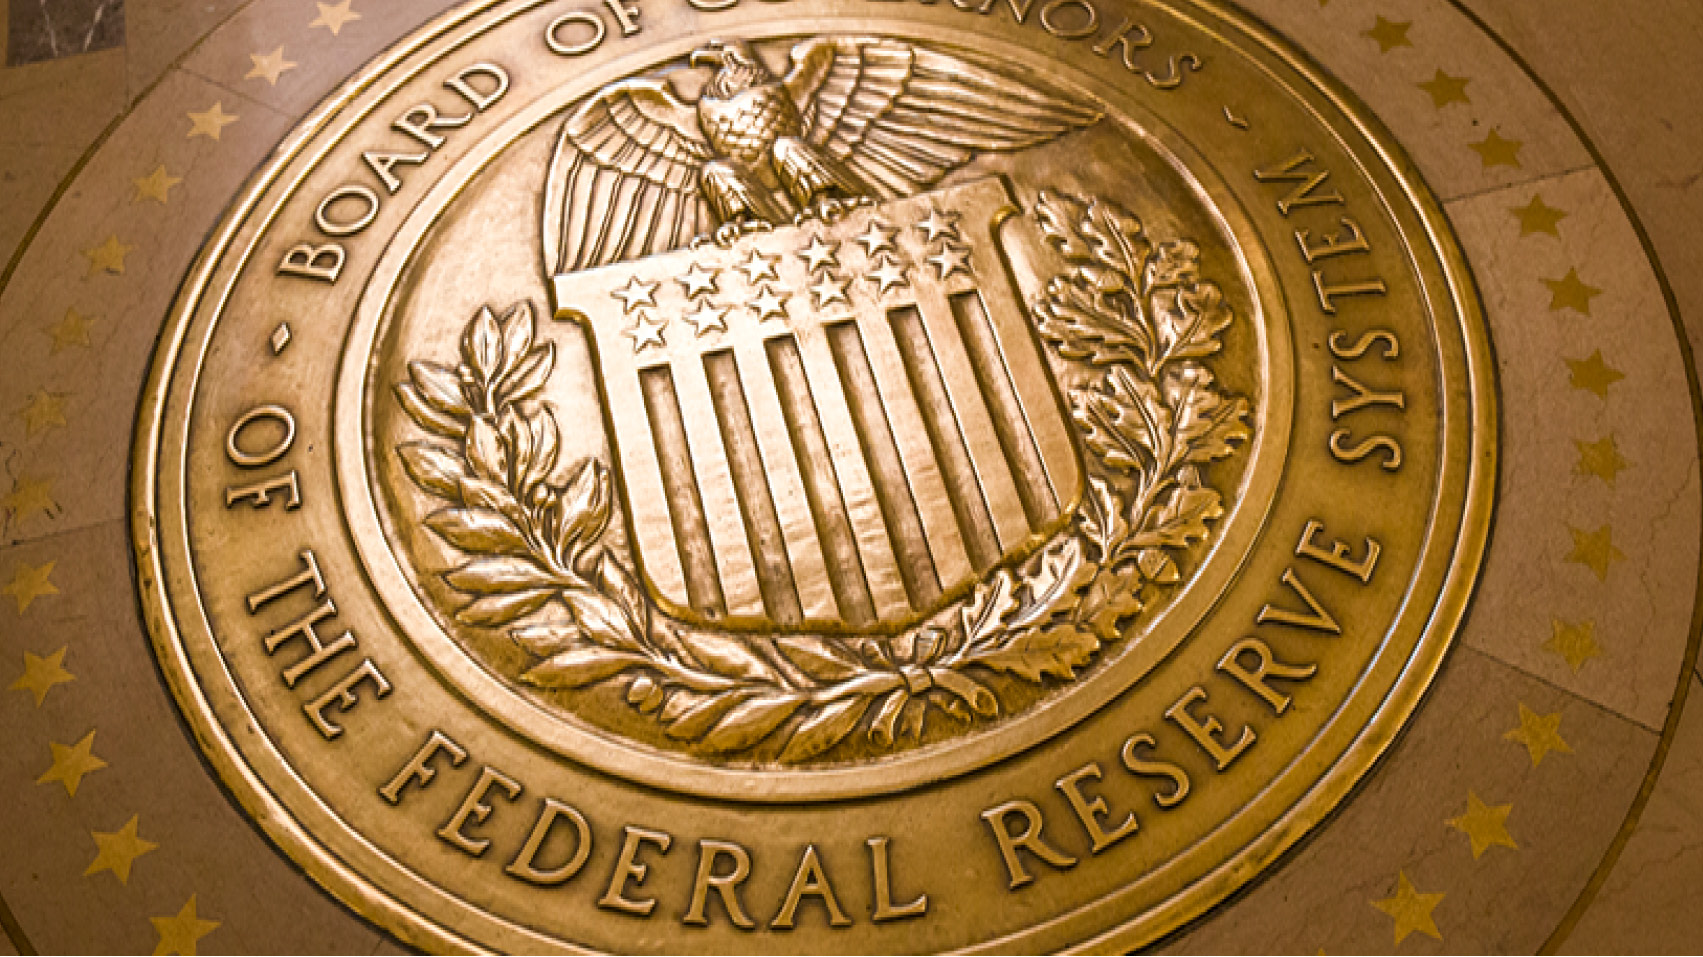 Brendan Brown discusses monetary policy and the political pressures on the Fed.